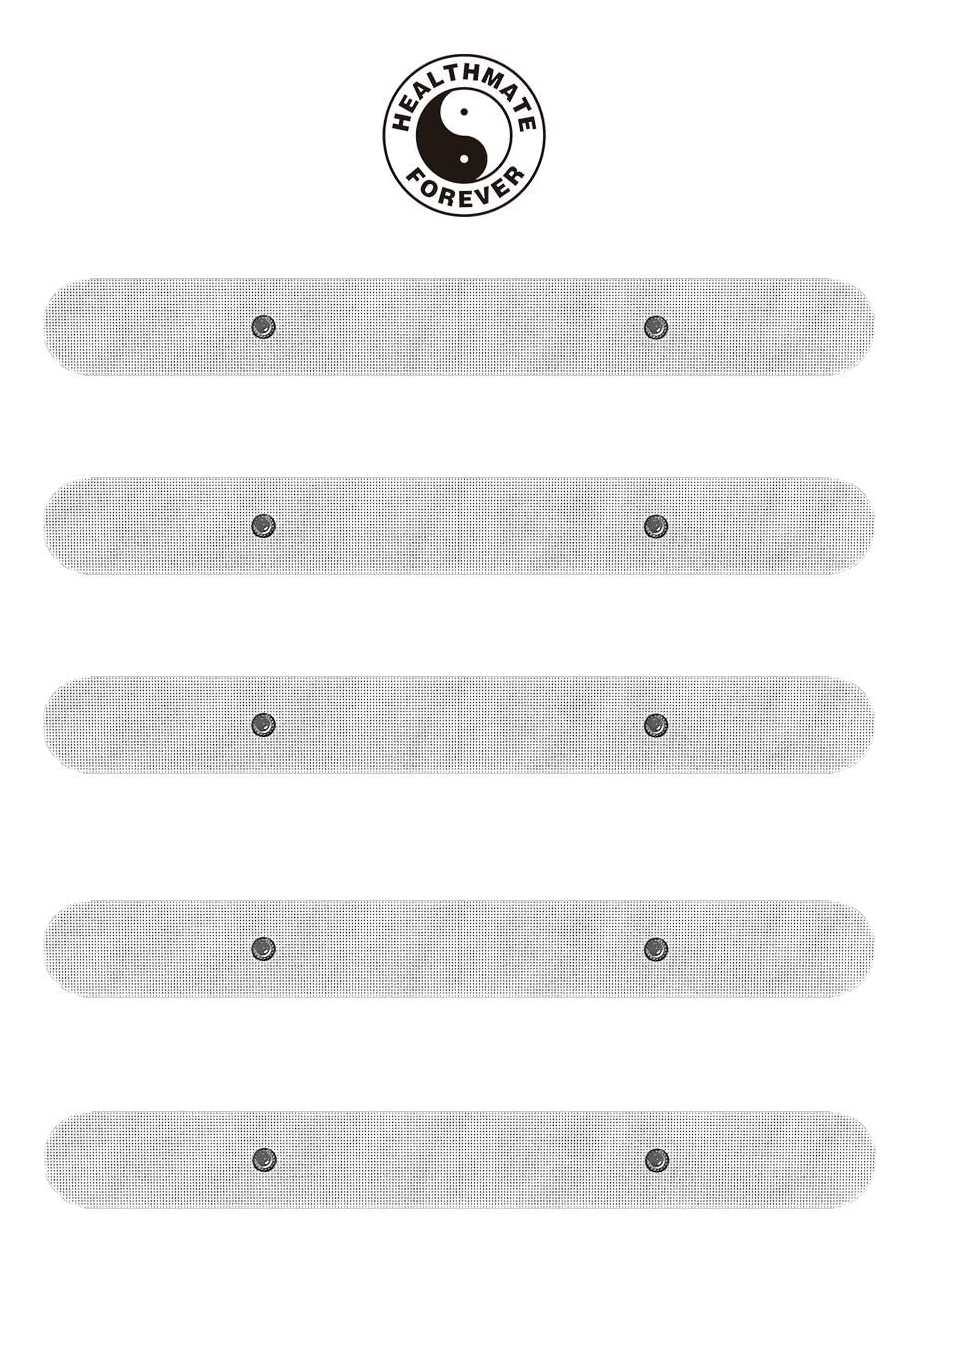 5 Pcs White Snap-On Long Strip Electrode Patches Pads - HealthmateForever.com